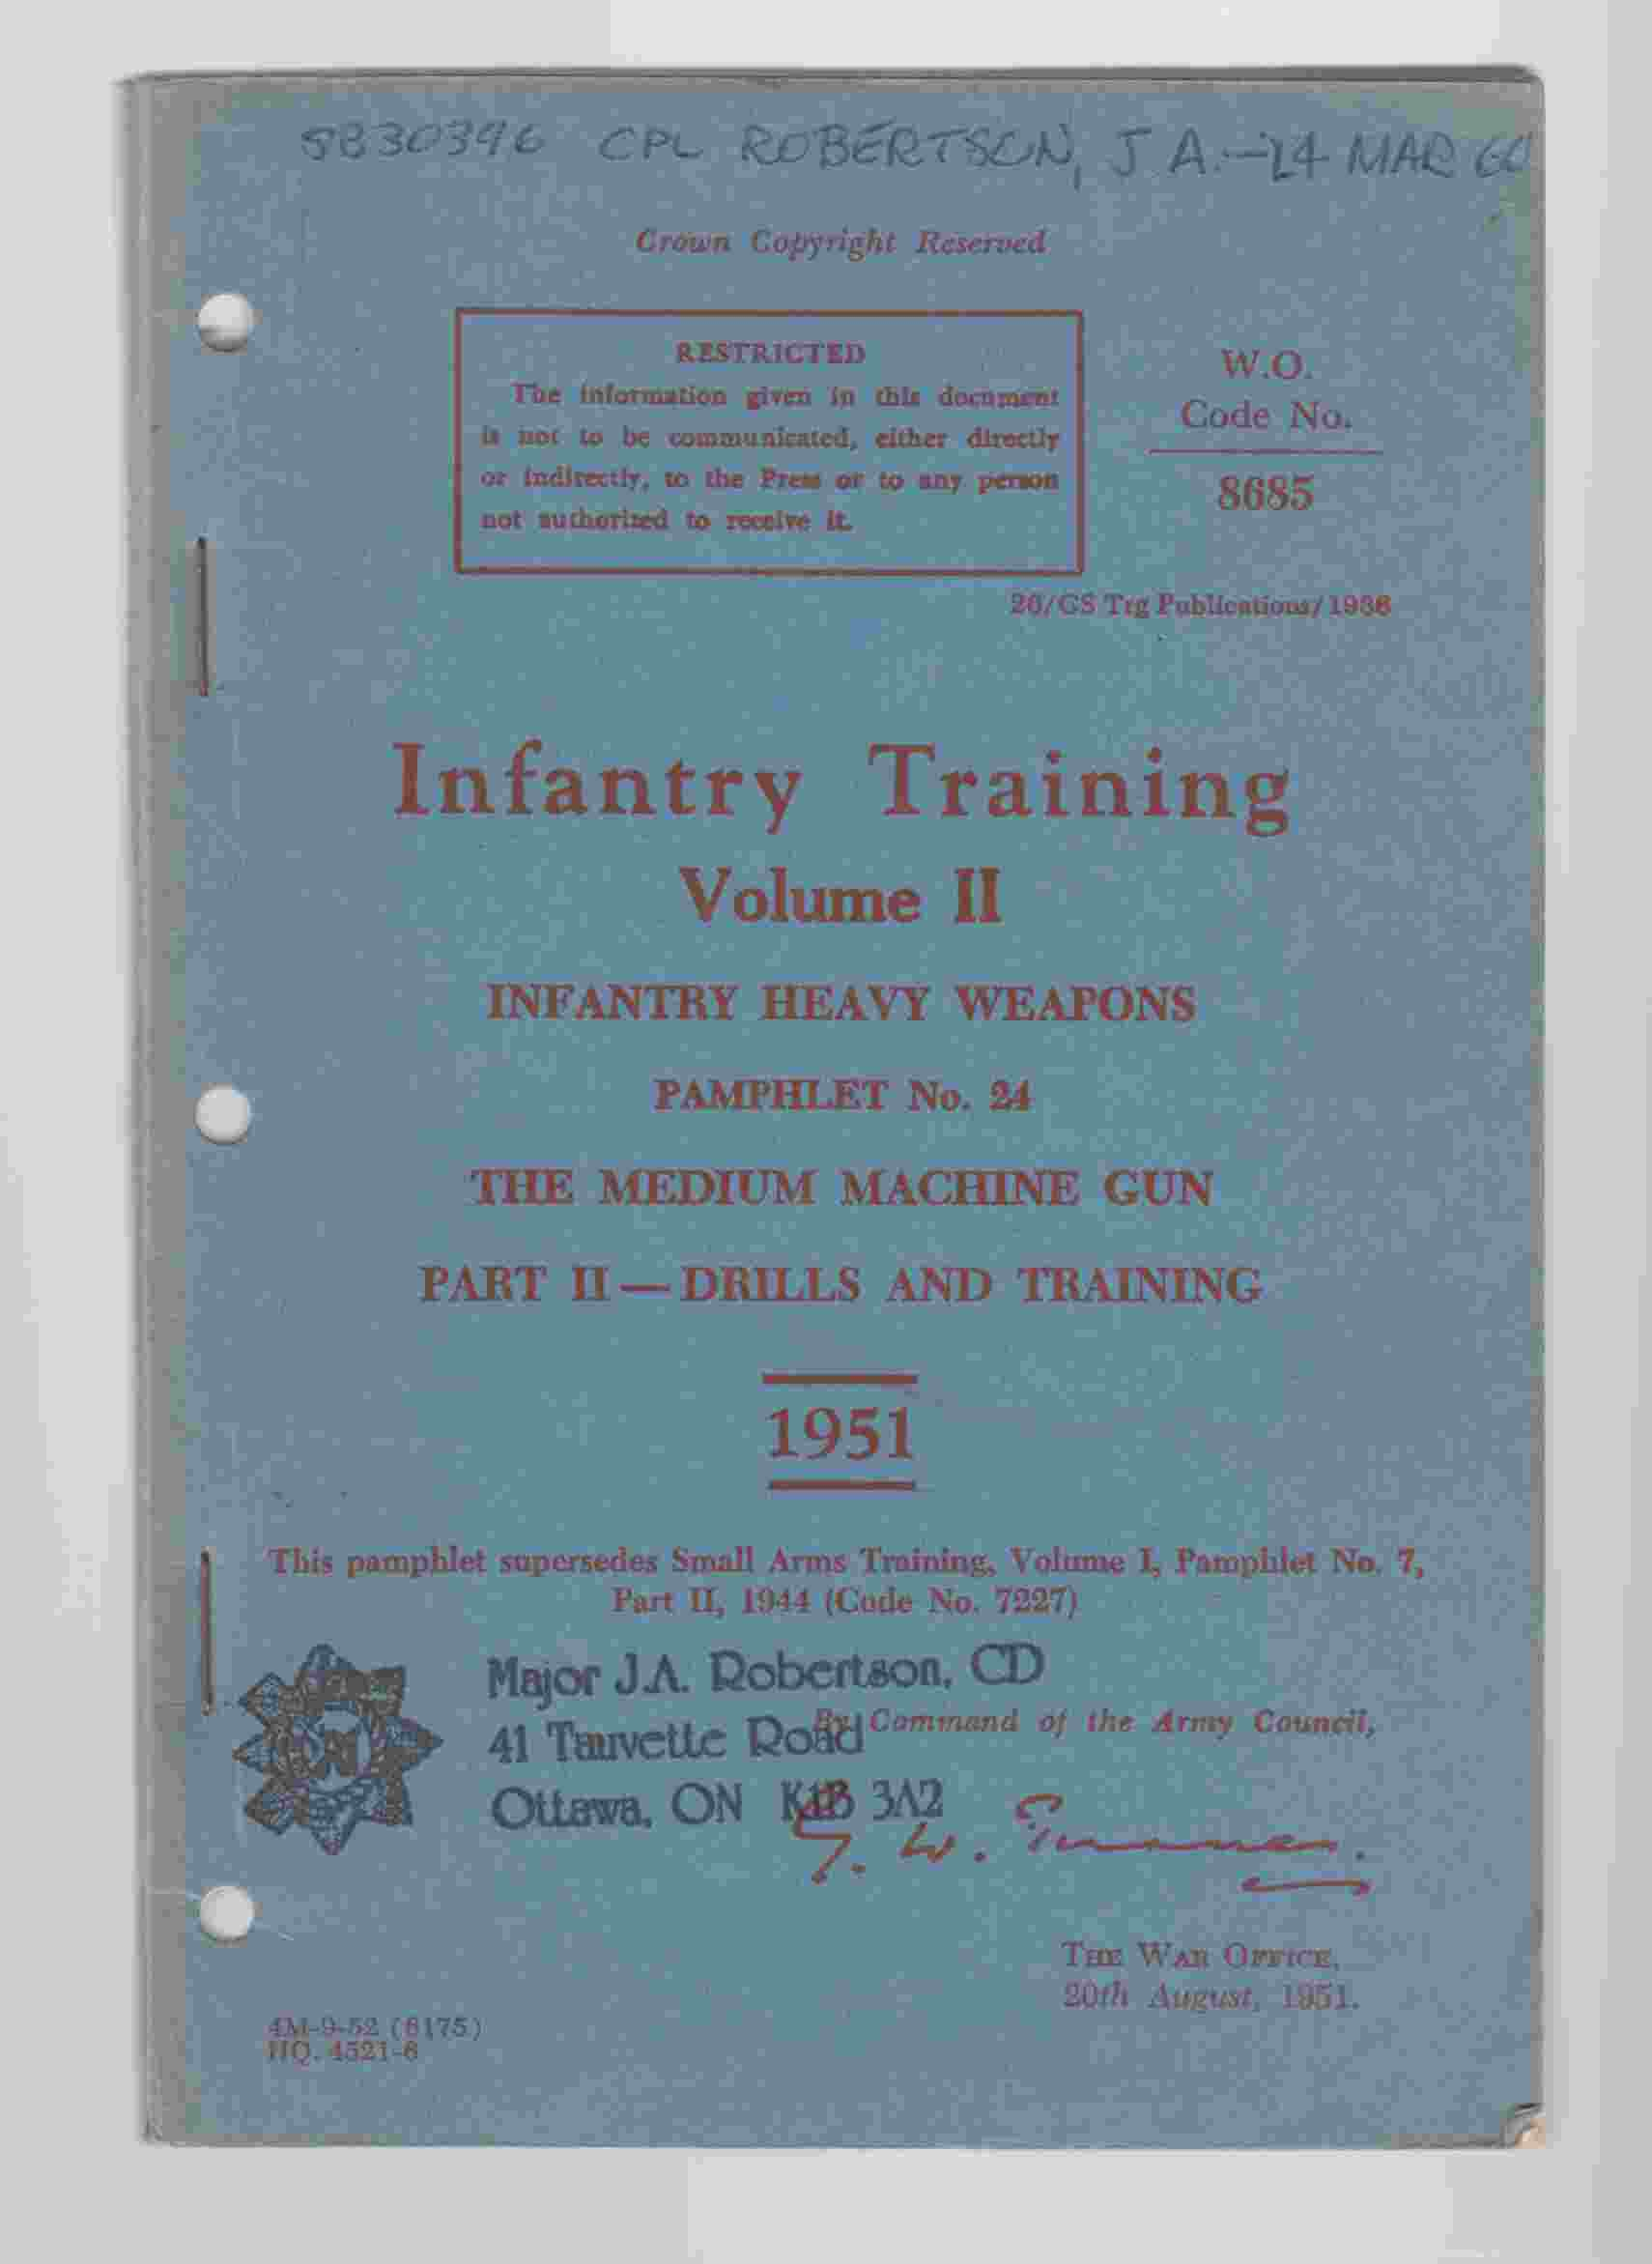 Image for Infantry Training Volume II Infantry Heavy Weapons Pamphlet No. 24 the Medium Machine Gun Part II - Drills and Training 1951